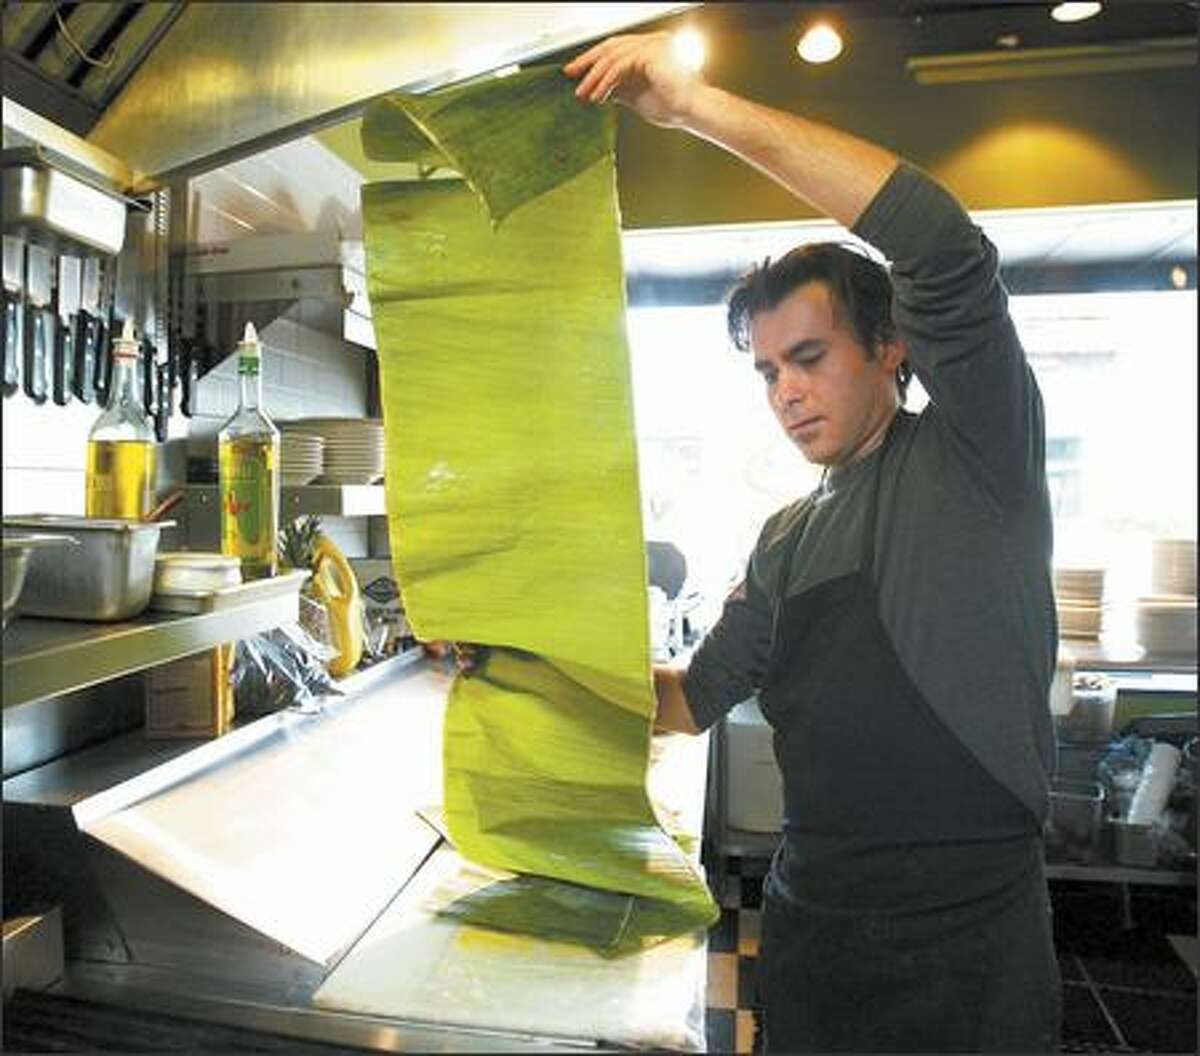 Alvaro Candela unrolls banana leaf to roast pork for tacos in a Mexican meal made for friends after hours at the Greek restaurant where he works.